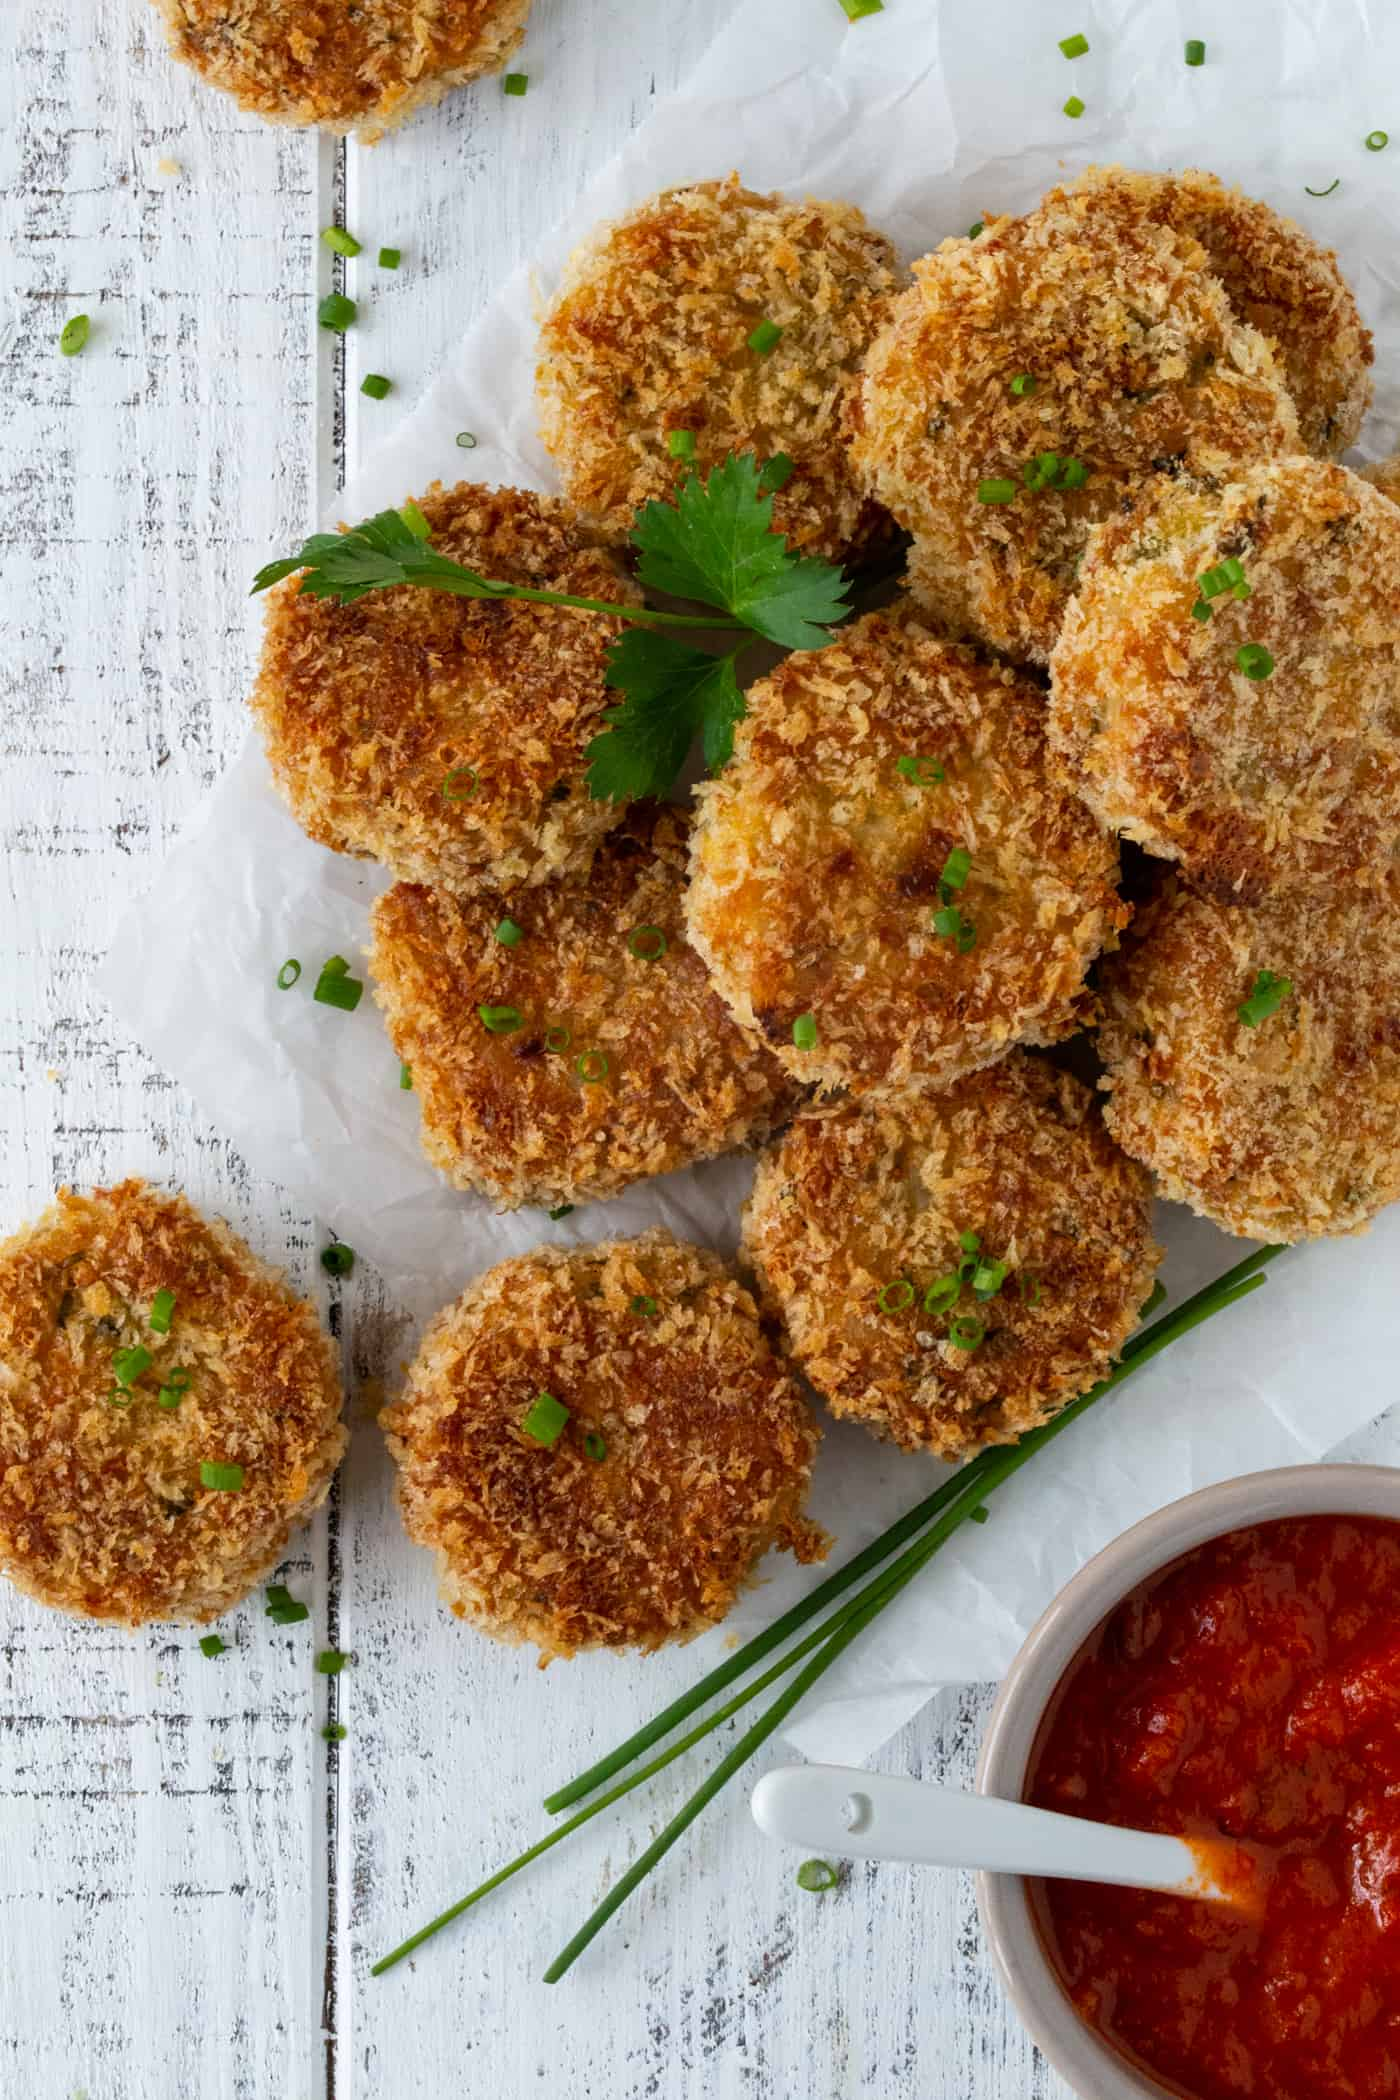 Pile of Fontina Chive Risotto Cakes on white parchment paper and garnished with fresh chives, grated parmesan cheese and chunky marinara sauce.